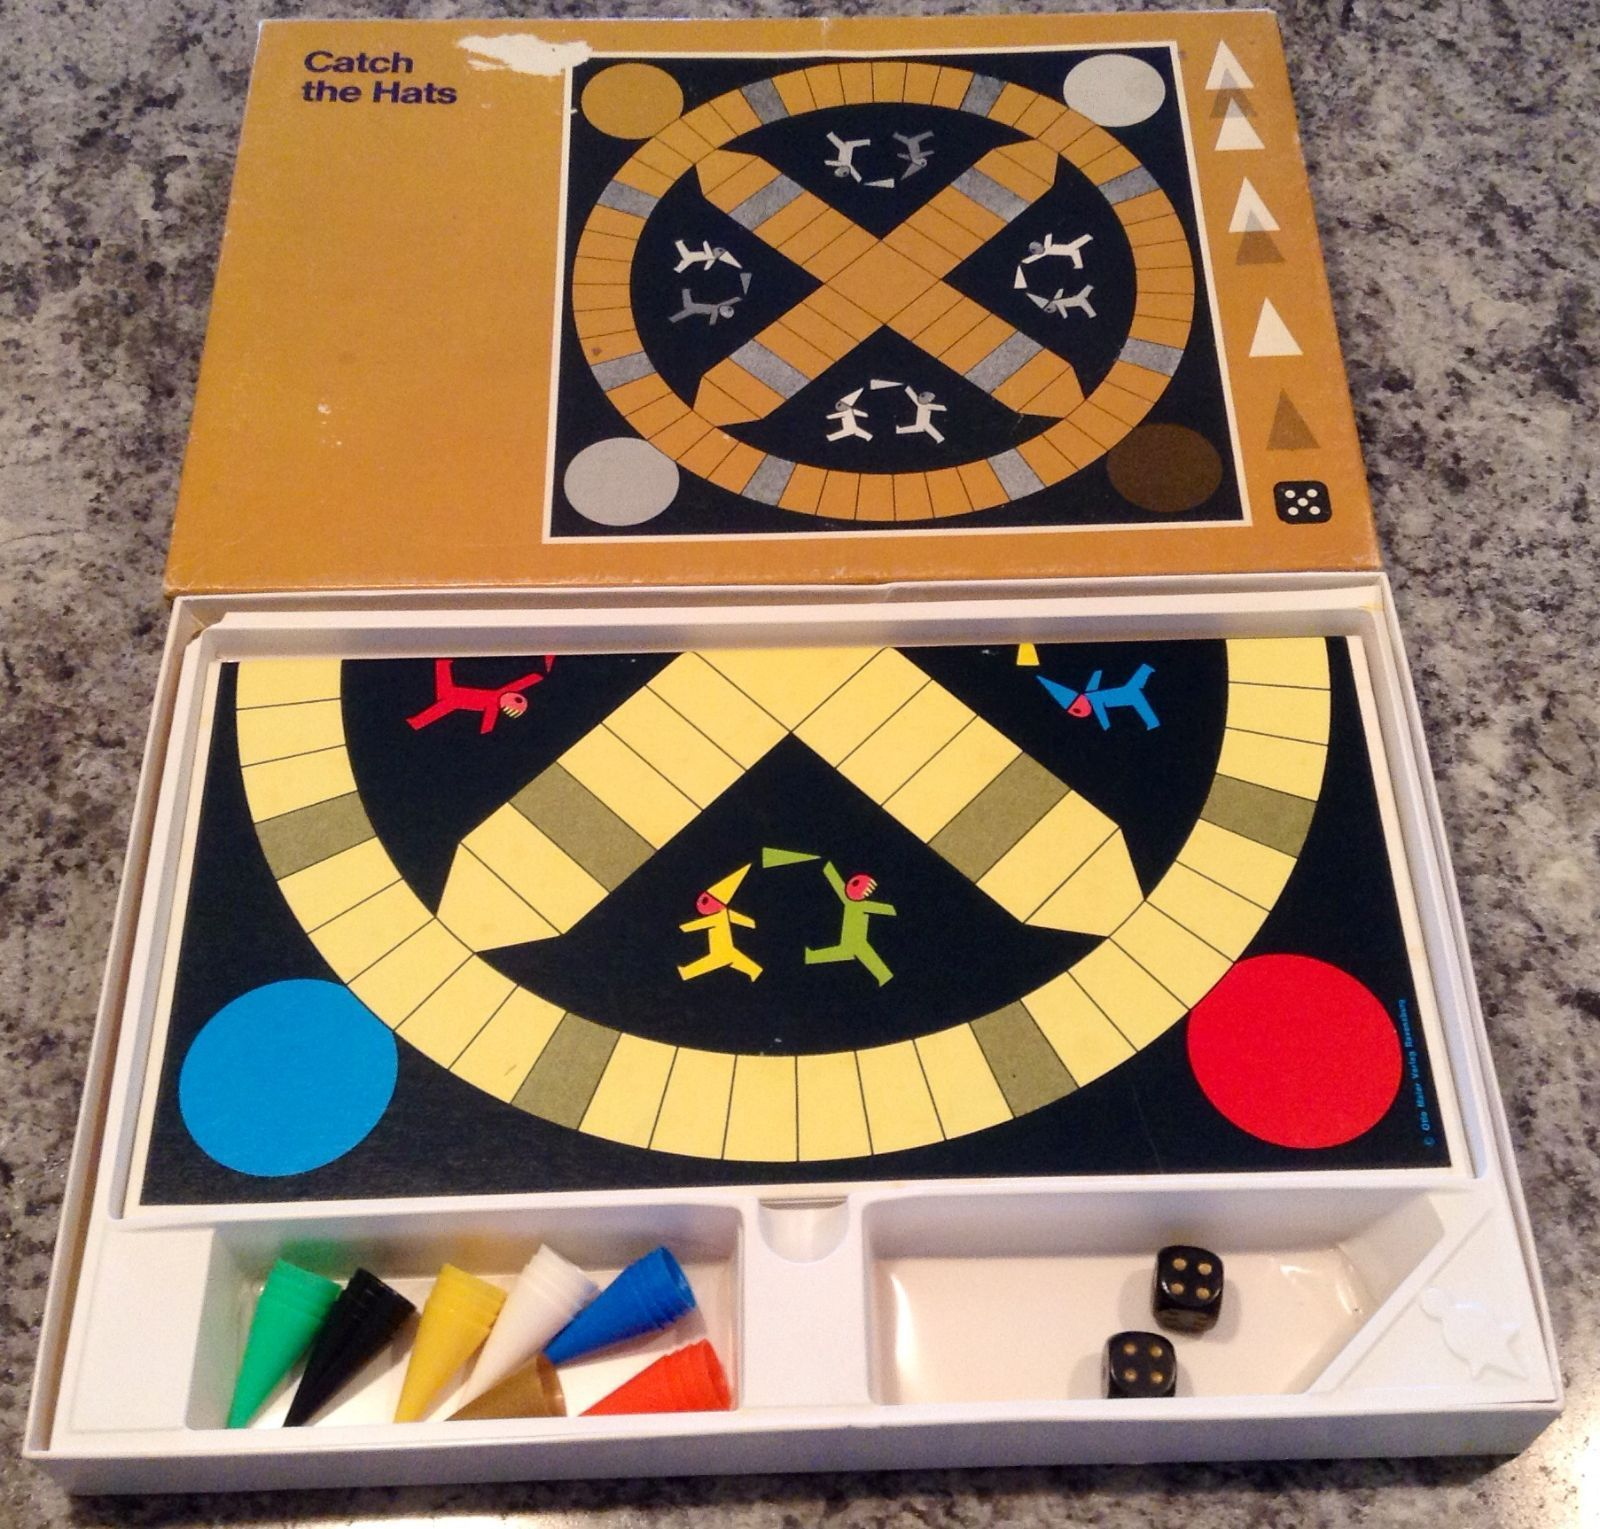 1972 Ravensburger Creative Playthings Catch the Hats game